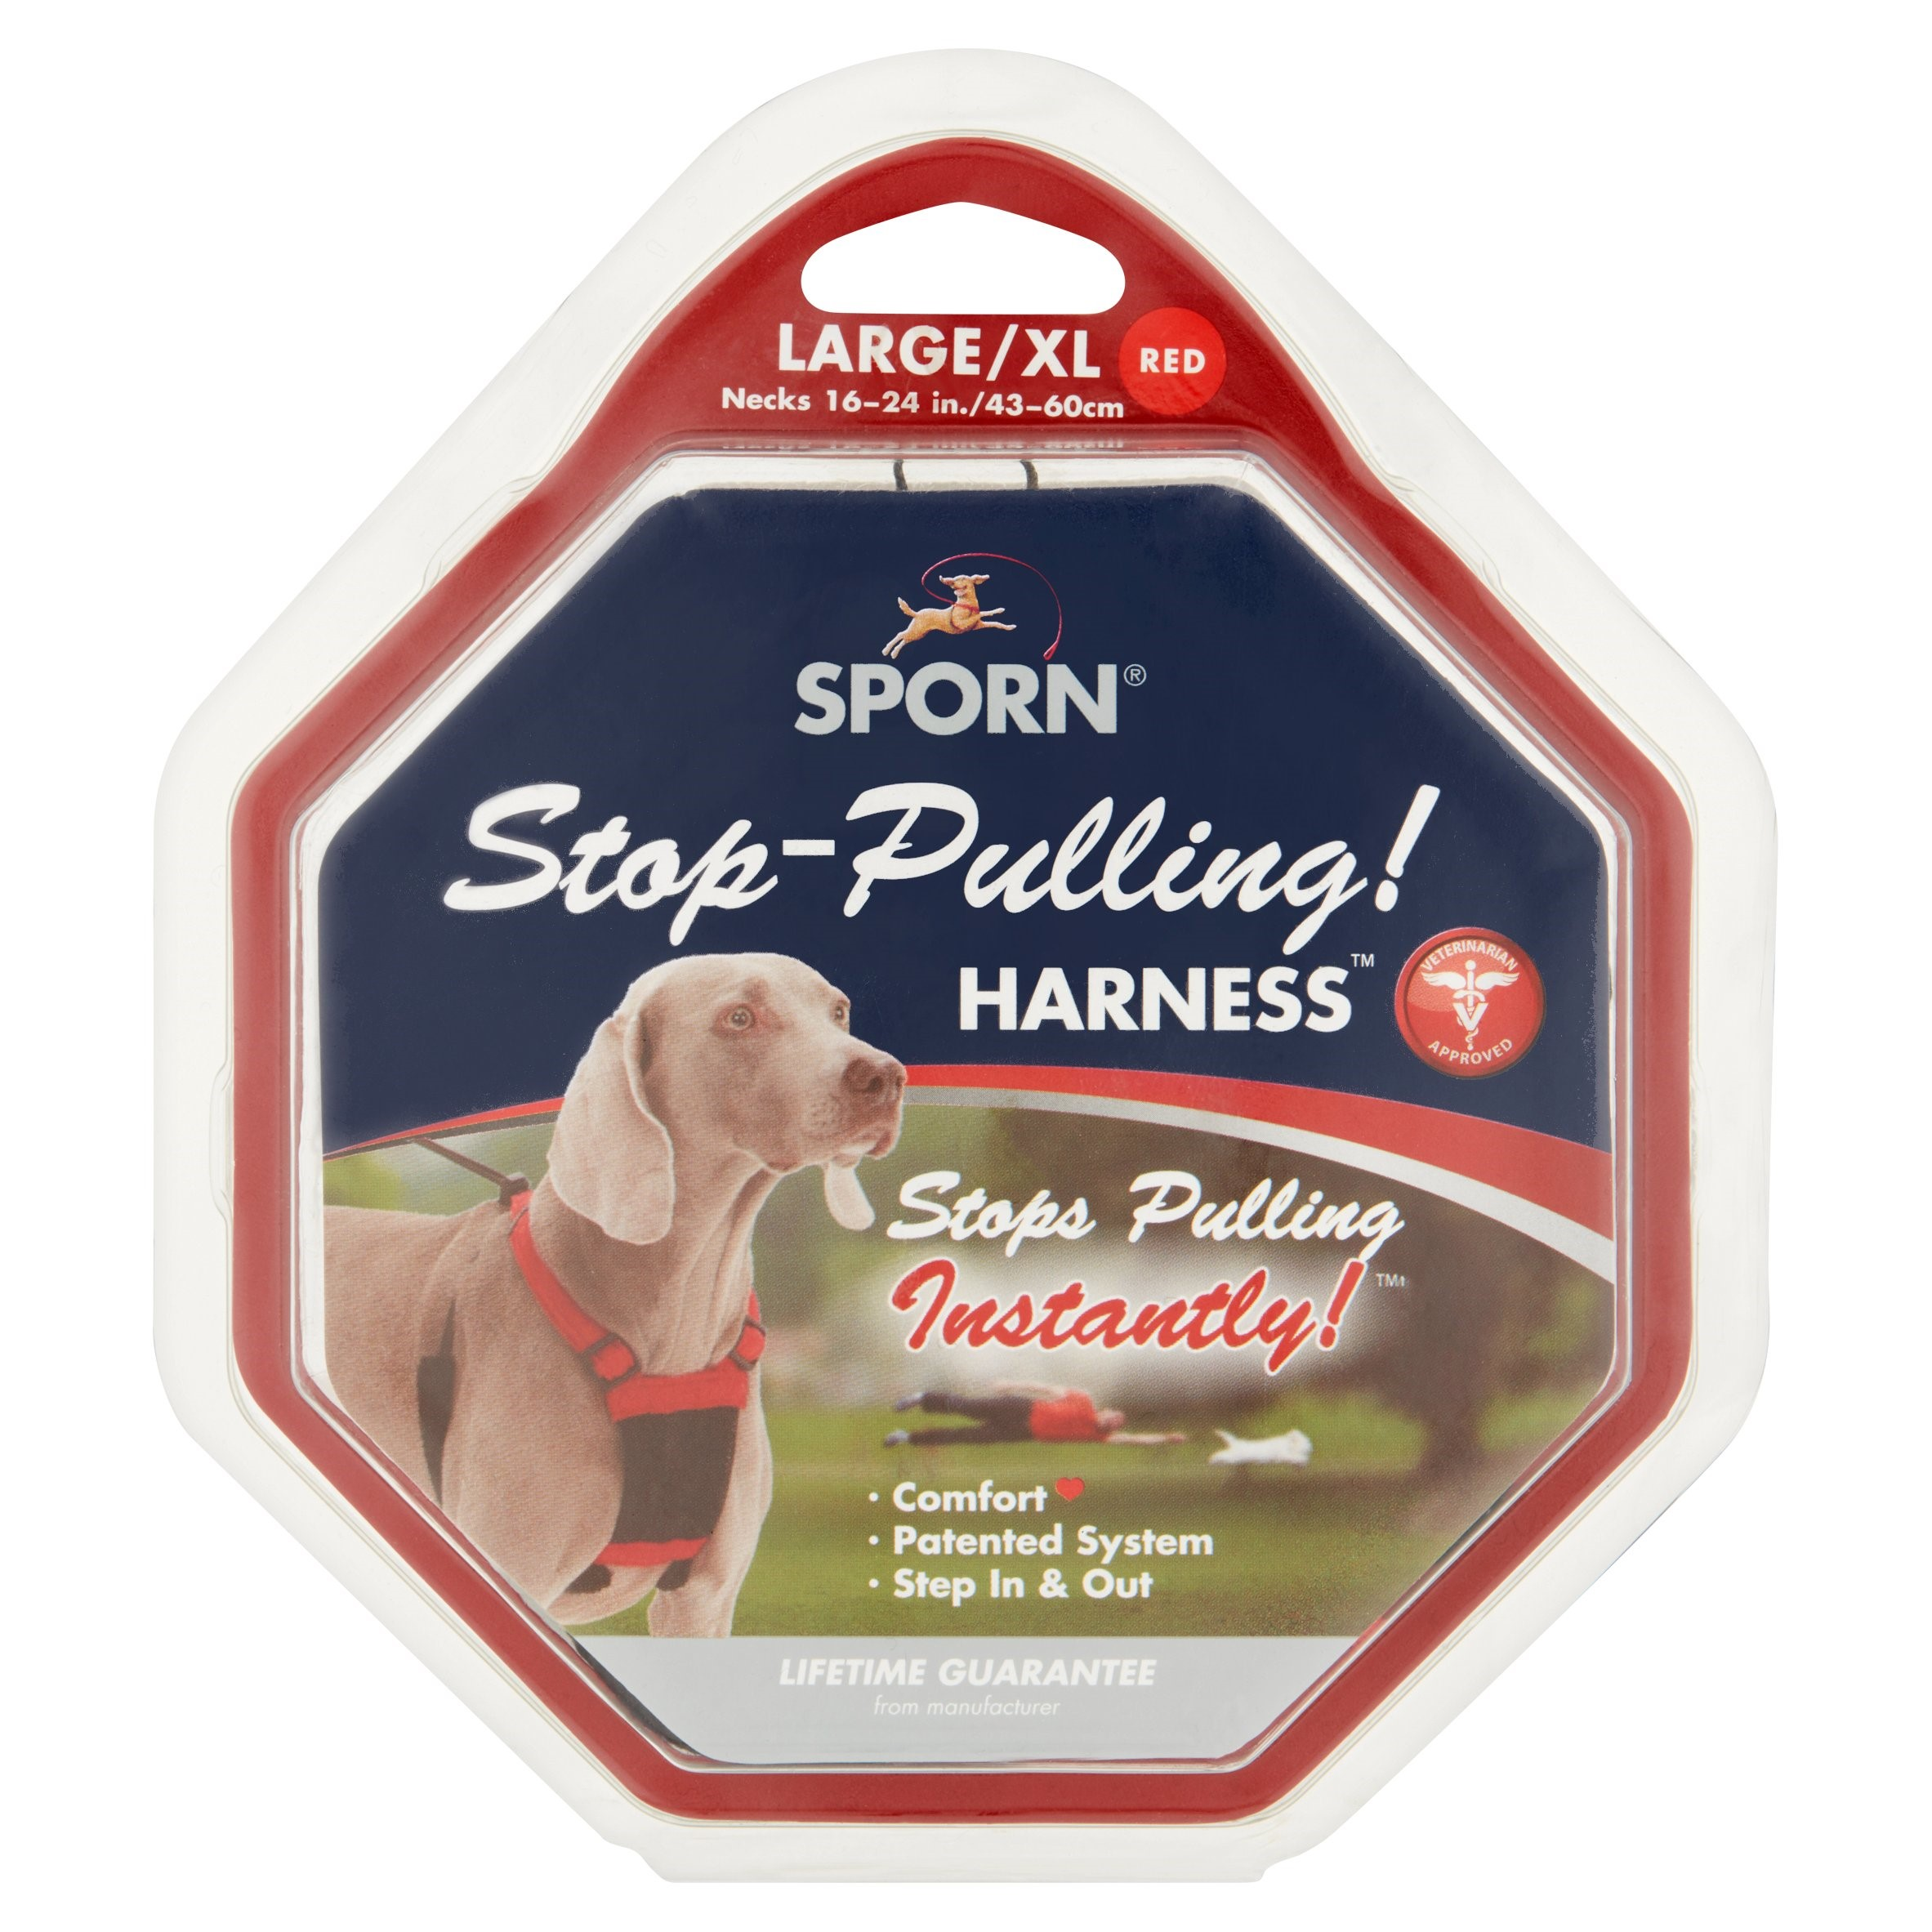 Sporn Stop-Pulling! Red Large/XL Harness